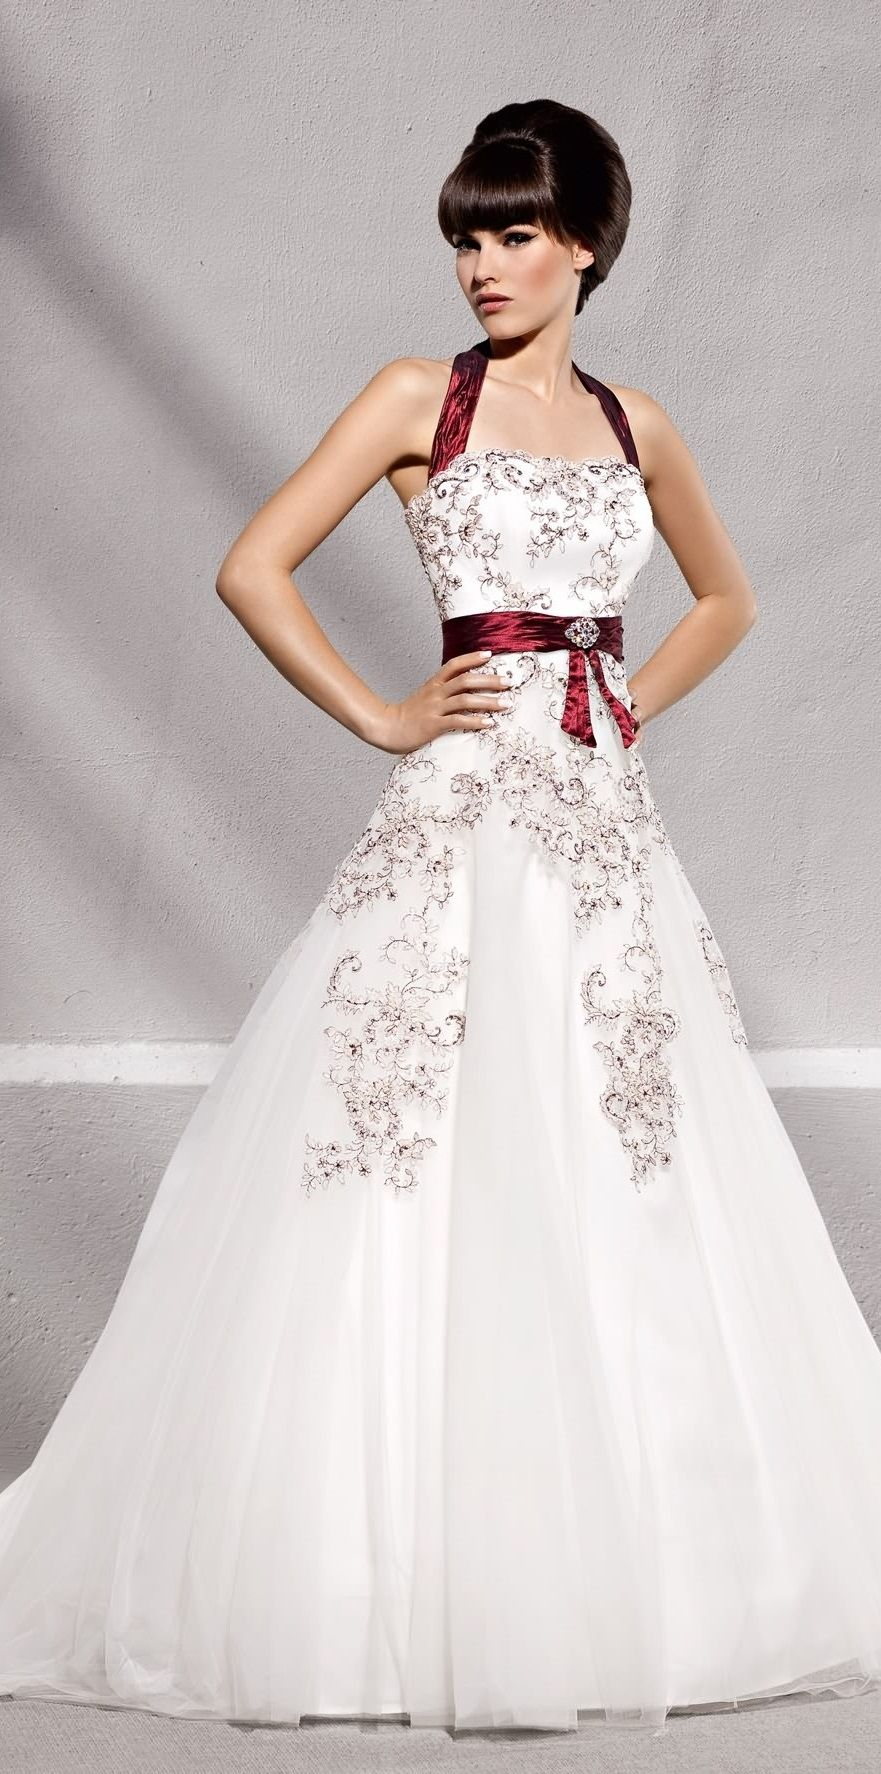 Wedding Dress With Red Accents From Elizabeth Pion